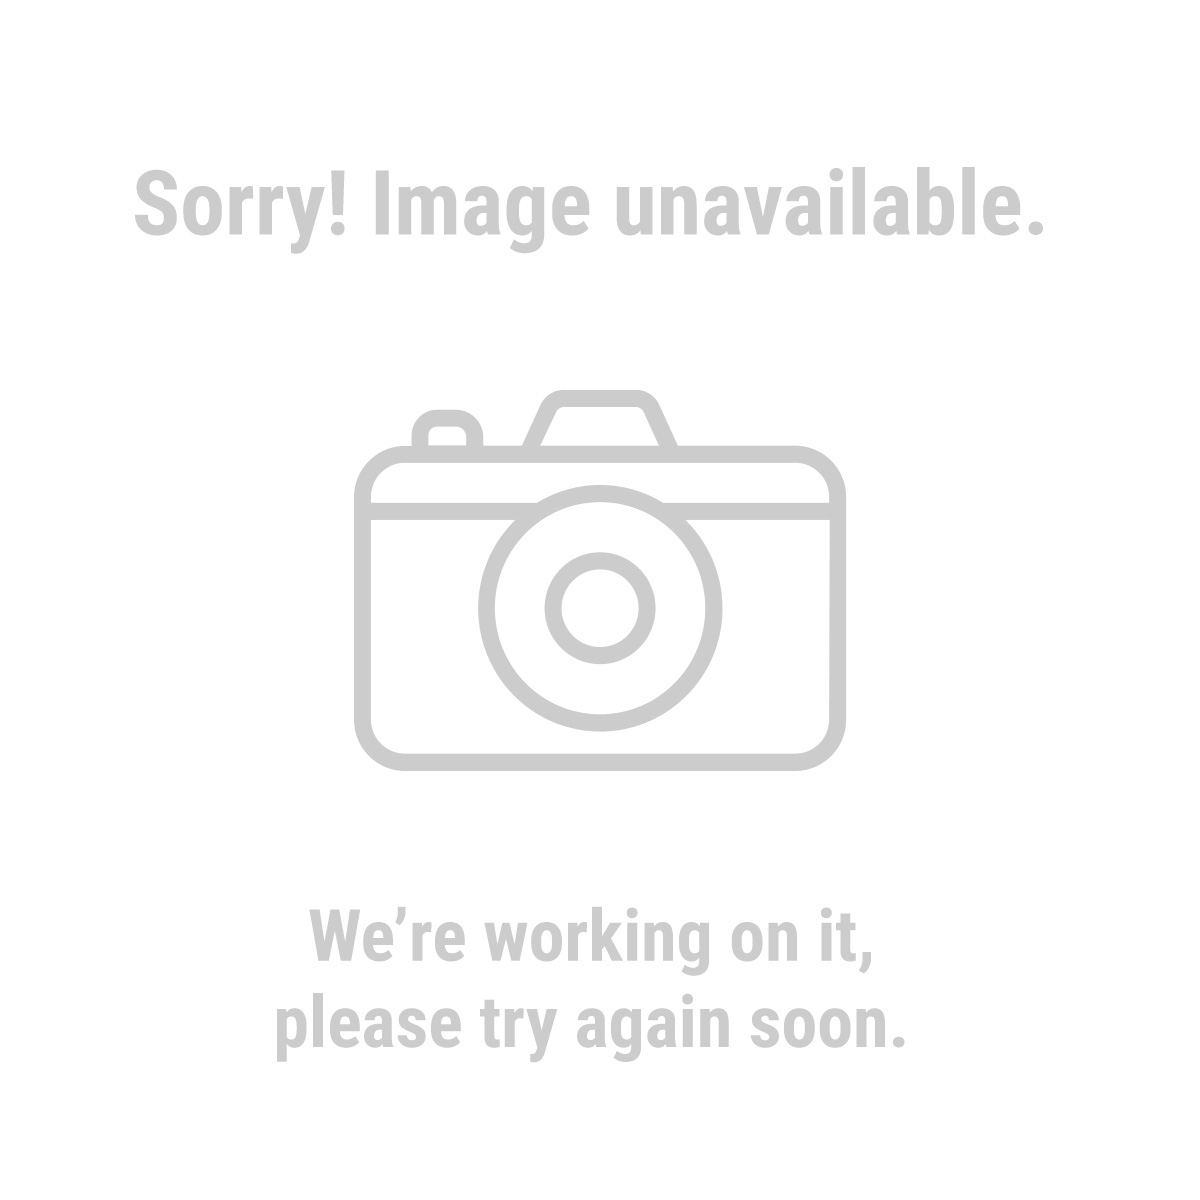 Warrior 69088 2 Piece Titanium Nitride Coated High Speed Steel Step Drills